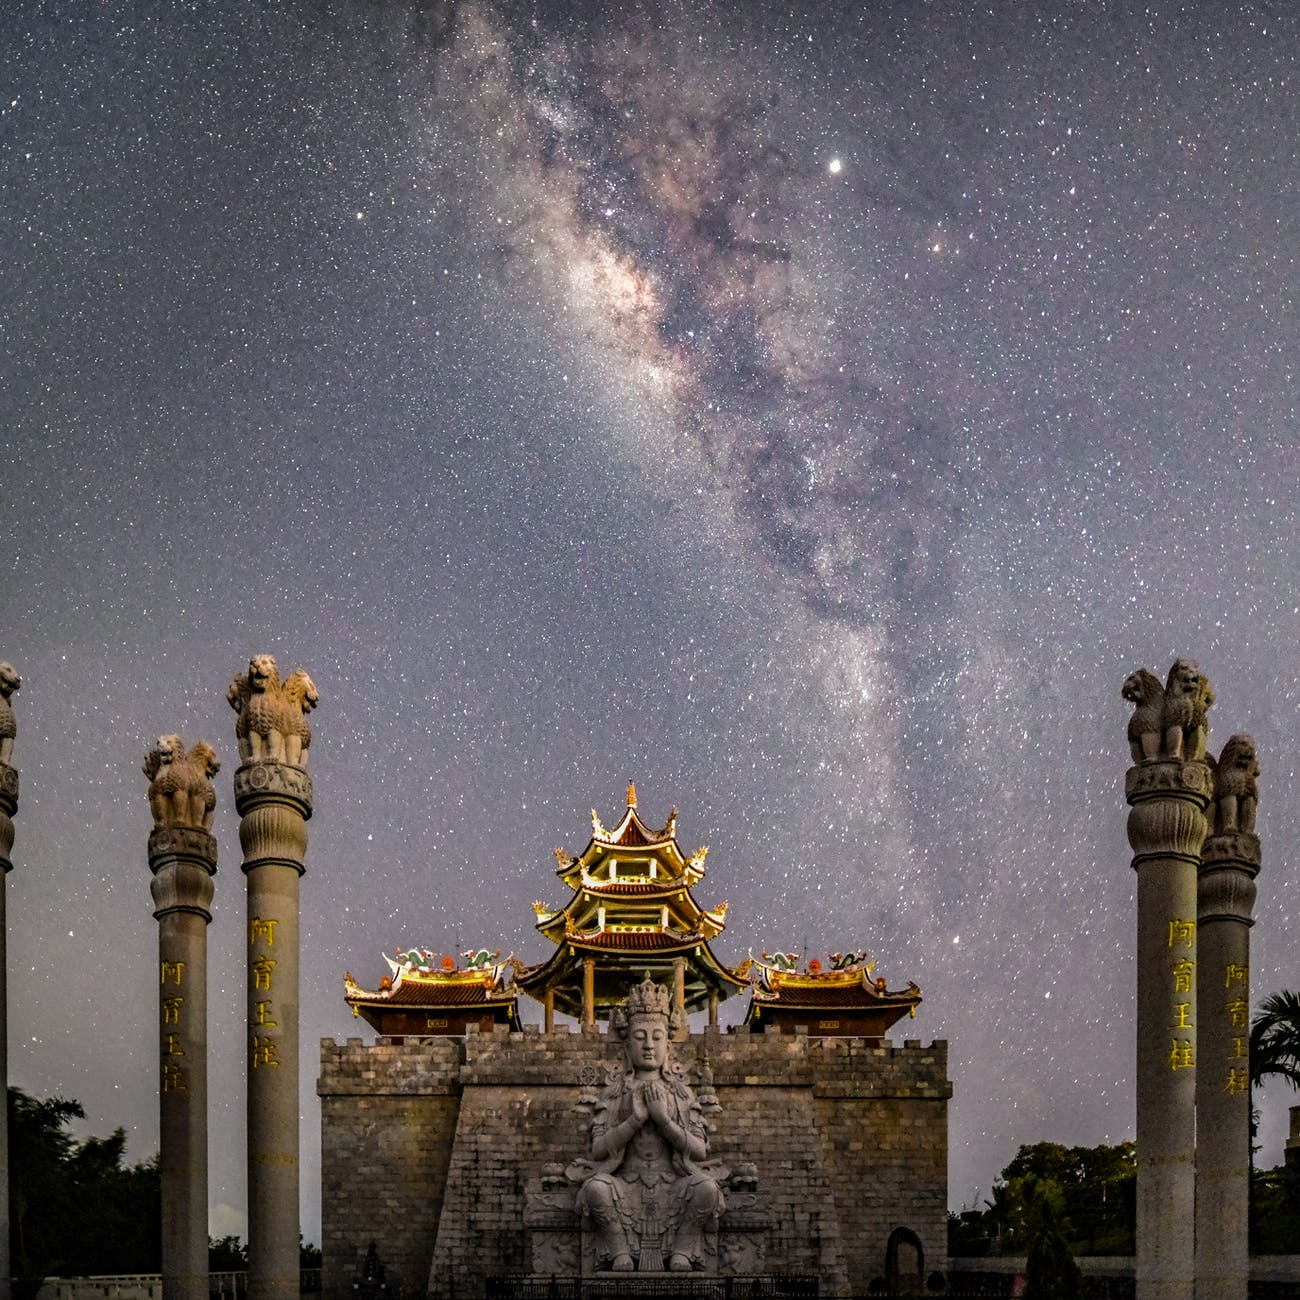 a temple under a starry sky